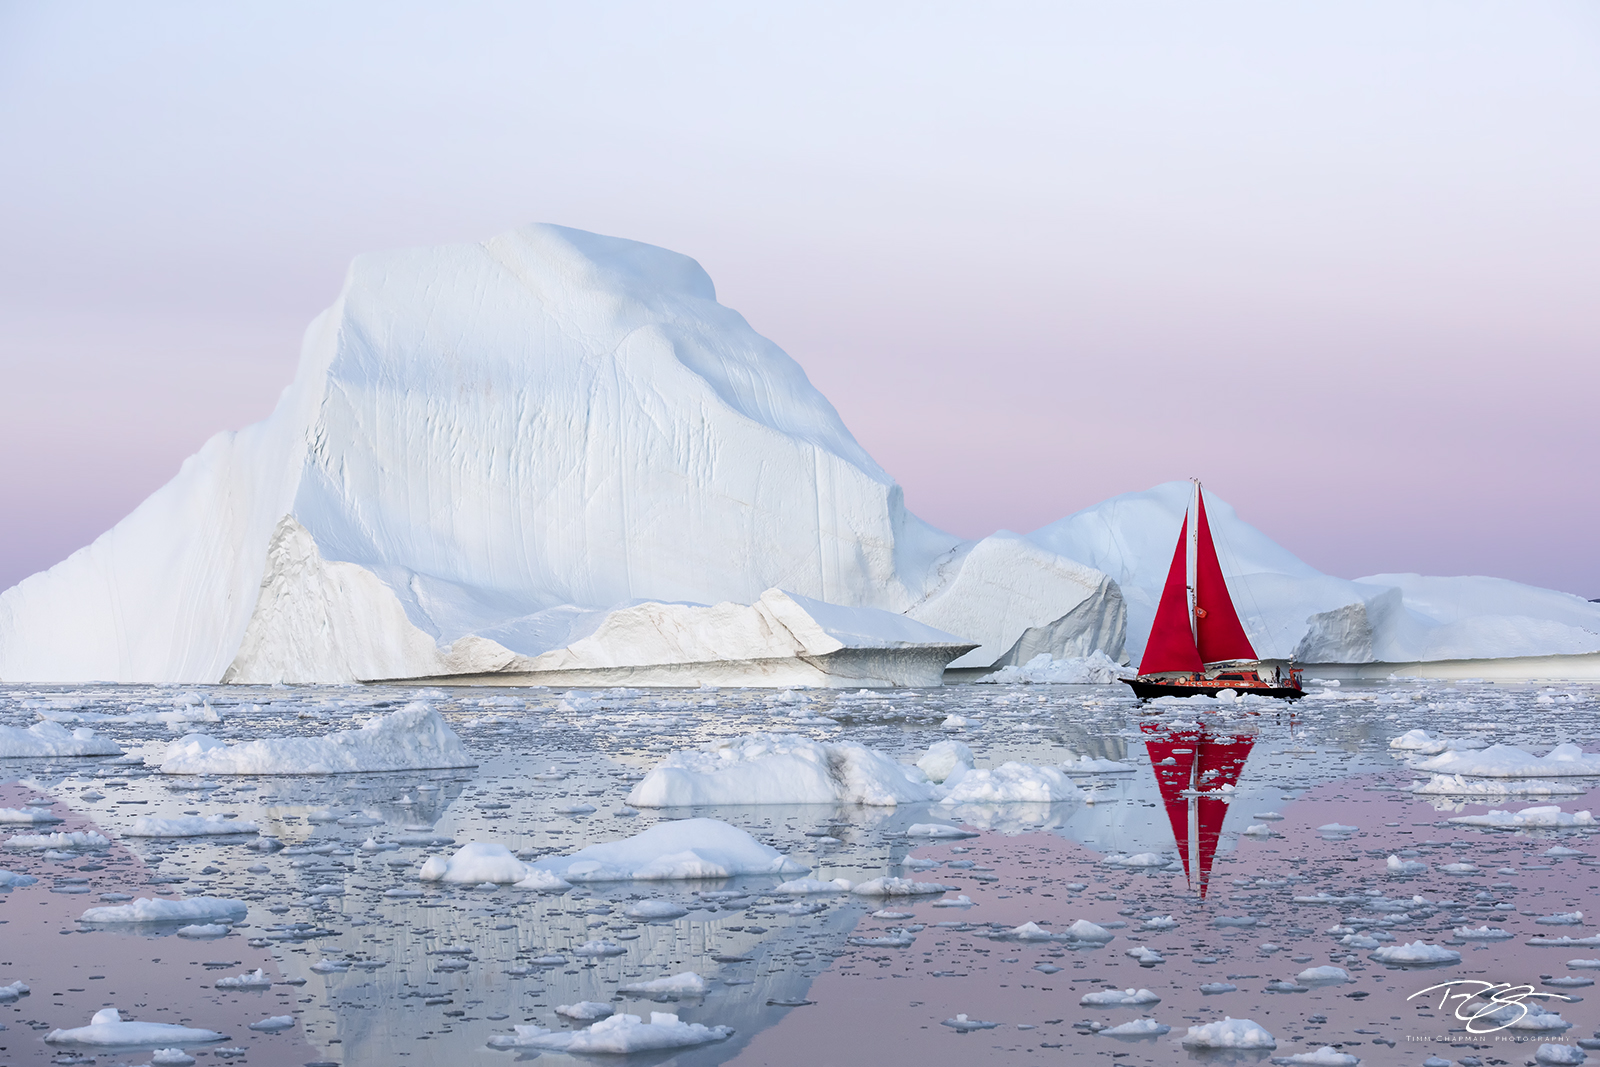 ice; iceberg; dusk; twilight; eventide; icefjord; ship; sailboat; schooner; sails; red sails; scarlet sails, reflection; pink sky; pastel sky; alpenglow, photo